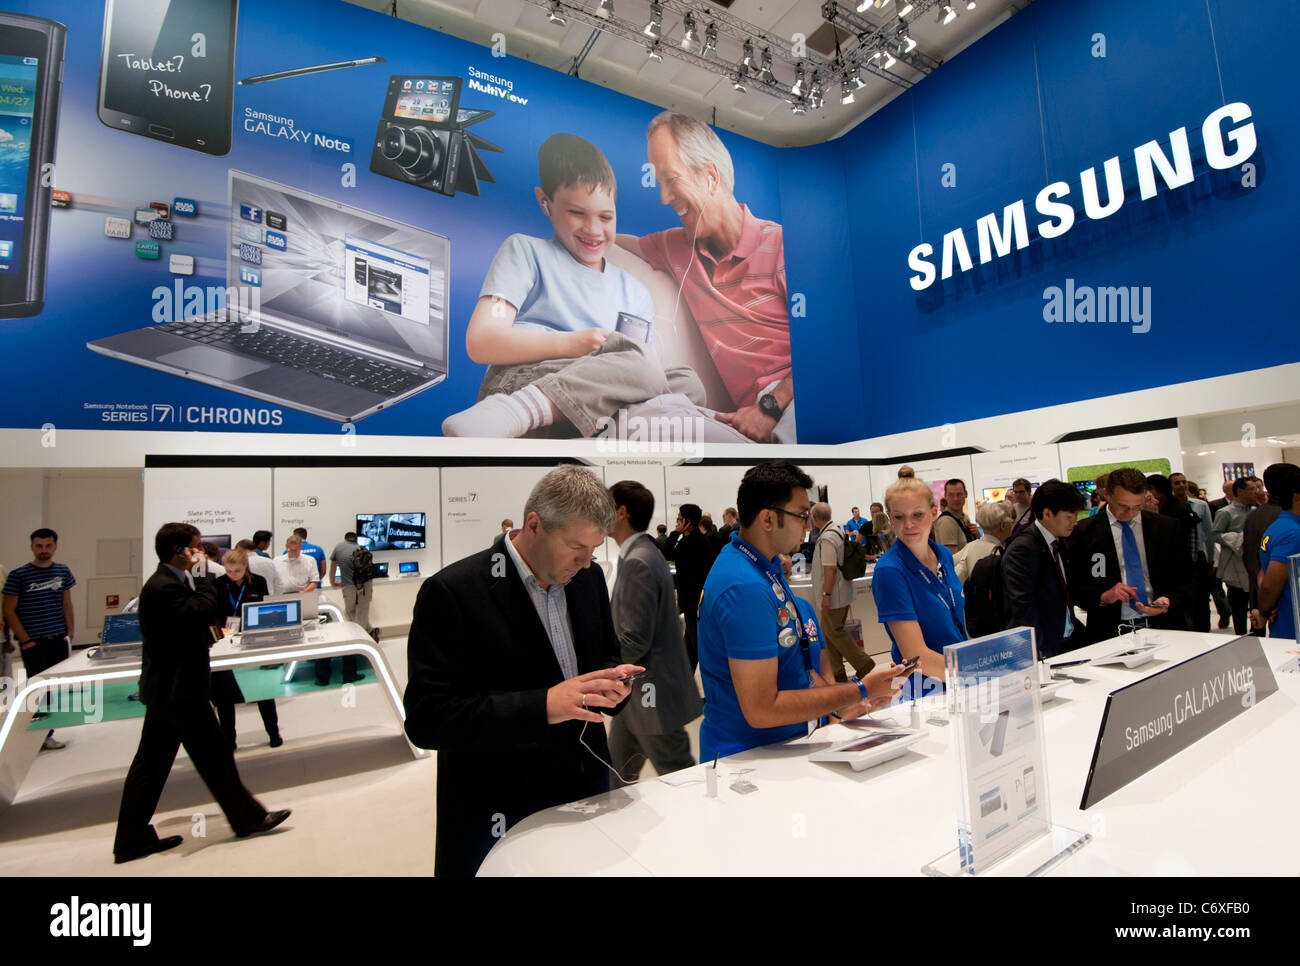 Samsung display stand at IFA consumer electronics trade fair in Berlin Germany 2011 - Stock Image